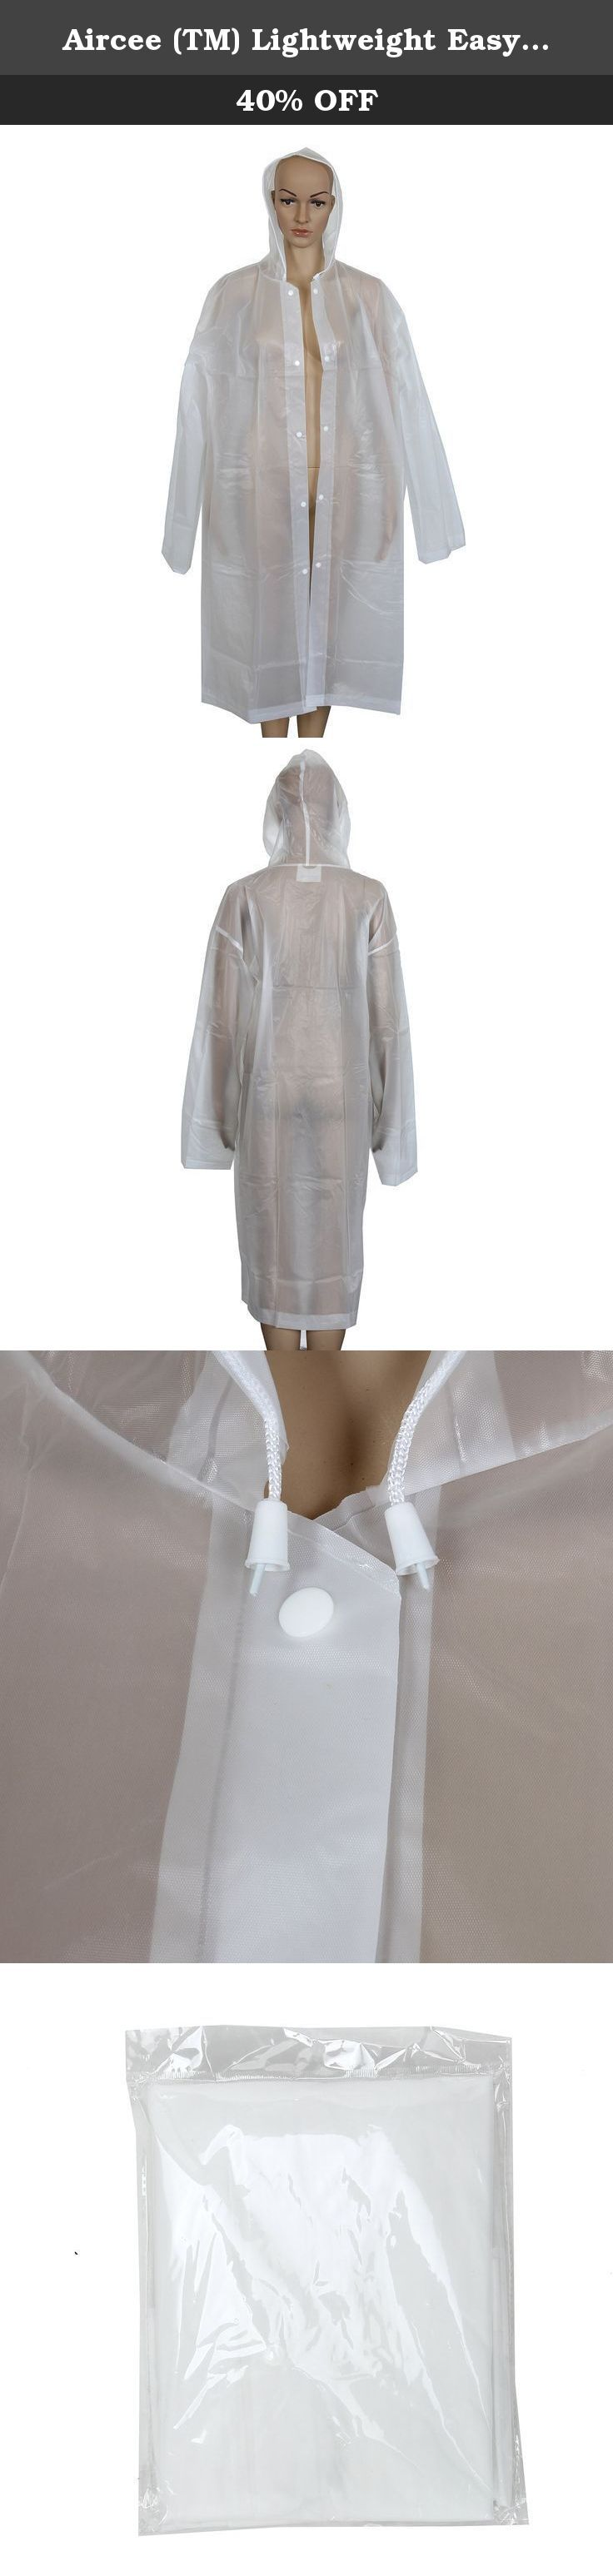 Aircee (TM) Lightweight Easy Carry Poncho Wind Hooded Jacket Raincoat (White). Size:55*14 inches Weight:135 g. Lightweight Easy Carry Poncho Wind Hooded Jacket Raincoat.